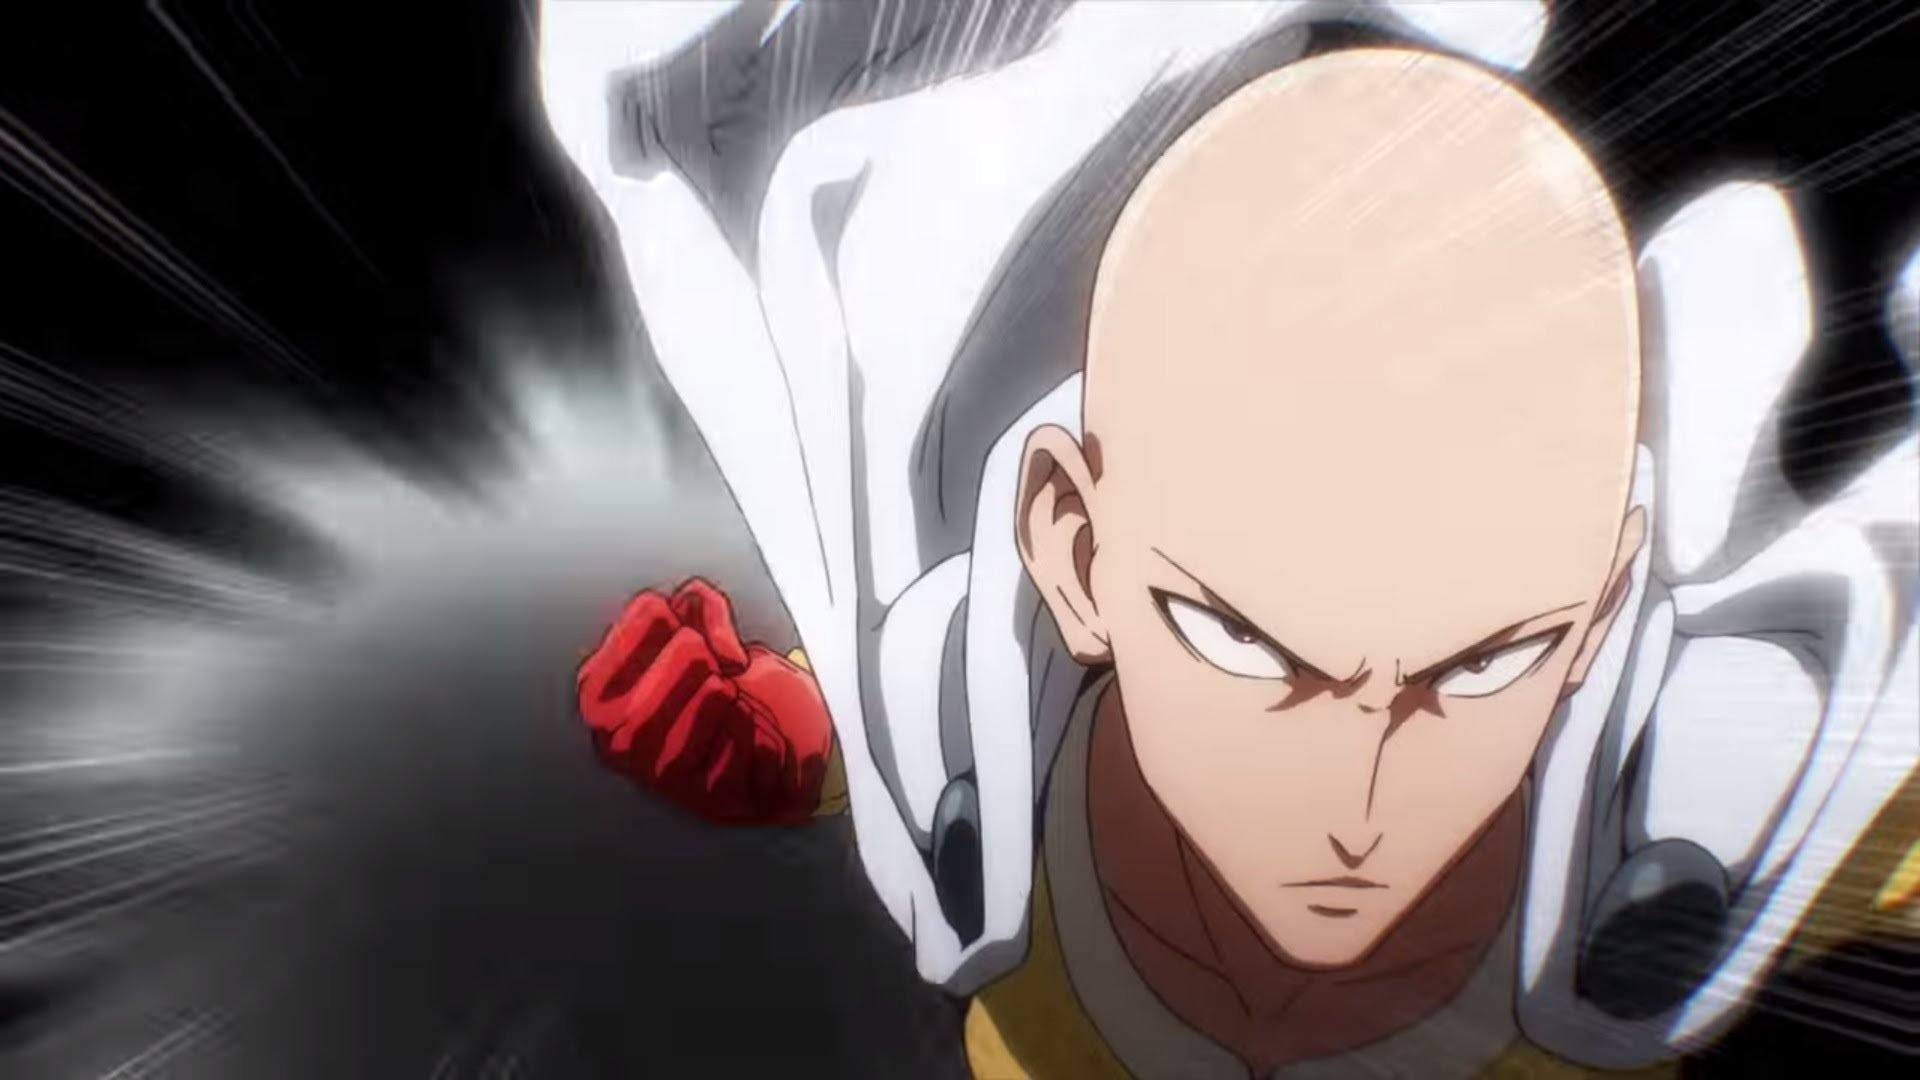 Expect Info About ONE PUNCH MAN Season 2 Later This Year GeekTyrant